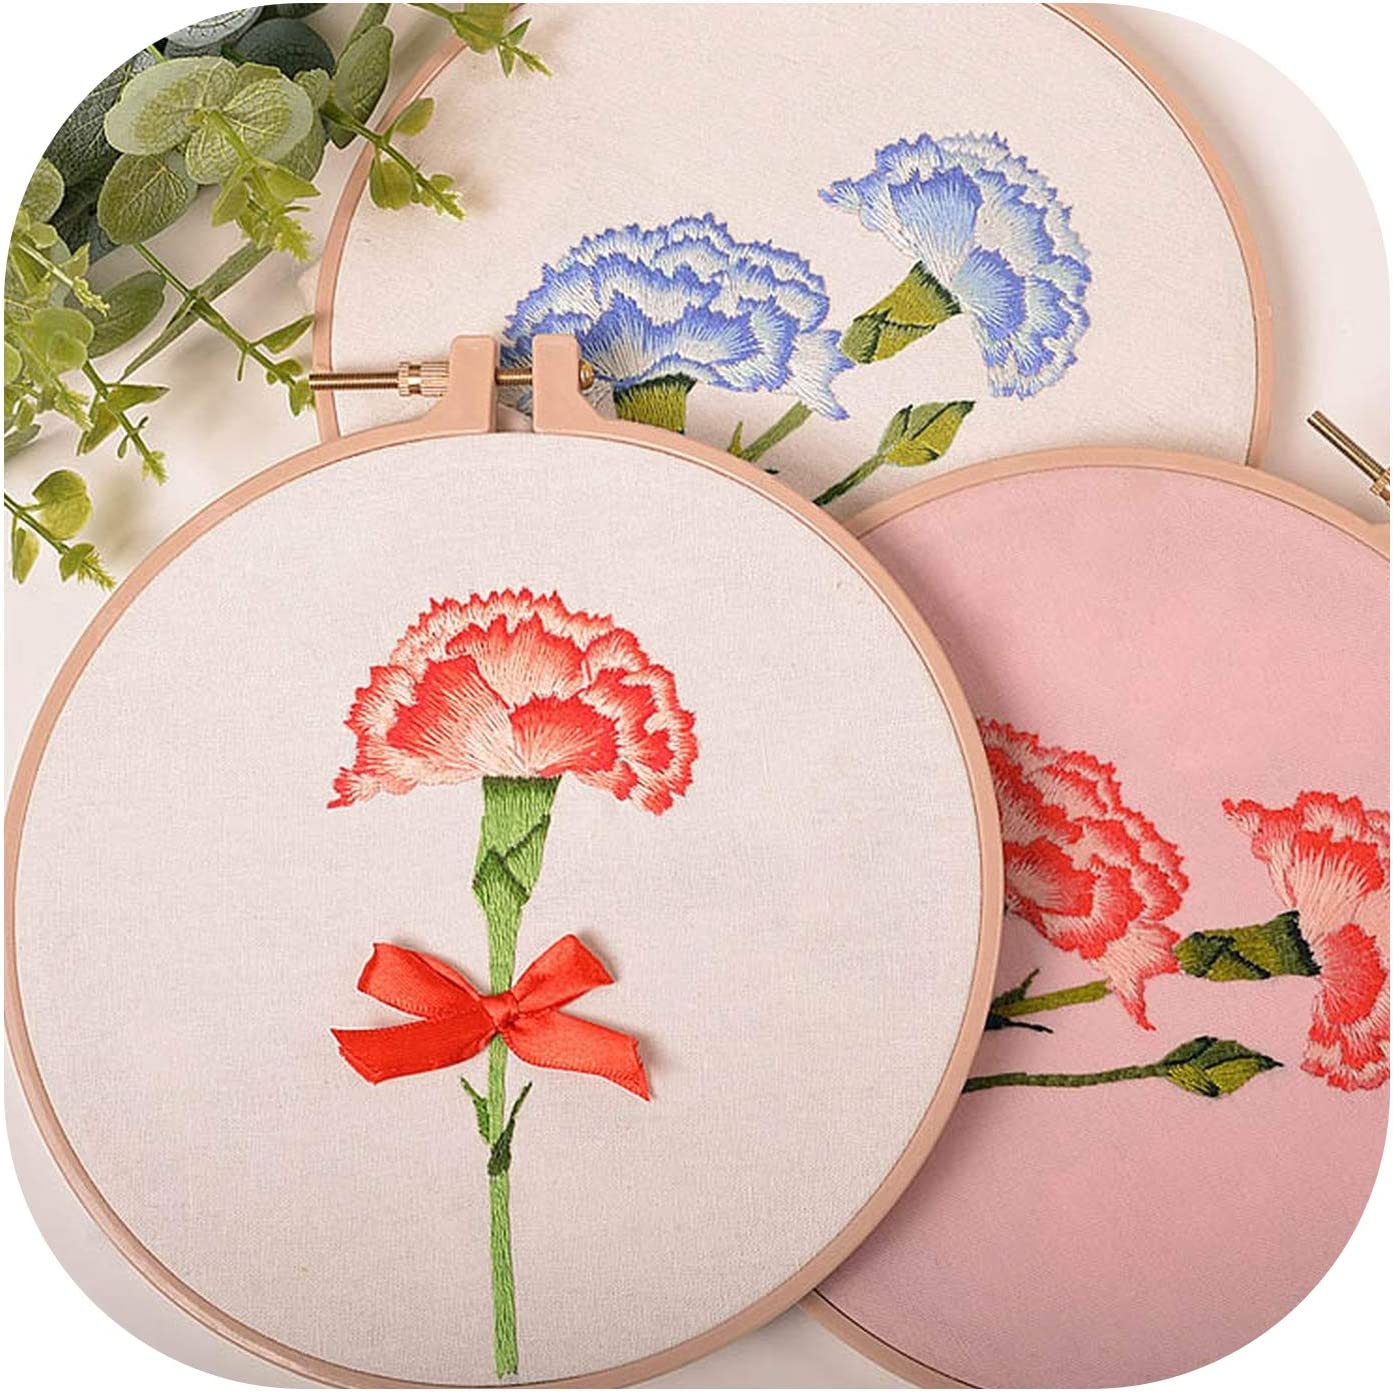 DIY Carnation Flower Embroidery Kits with Hoop Flower Printed Needlework Cross Stitch Sets Handmade Craft Sewing Art Home Decor,1,20cm Bamboo Hoop